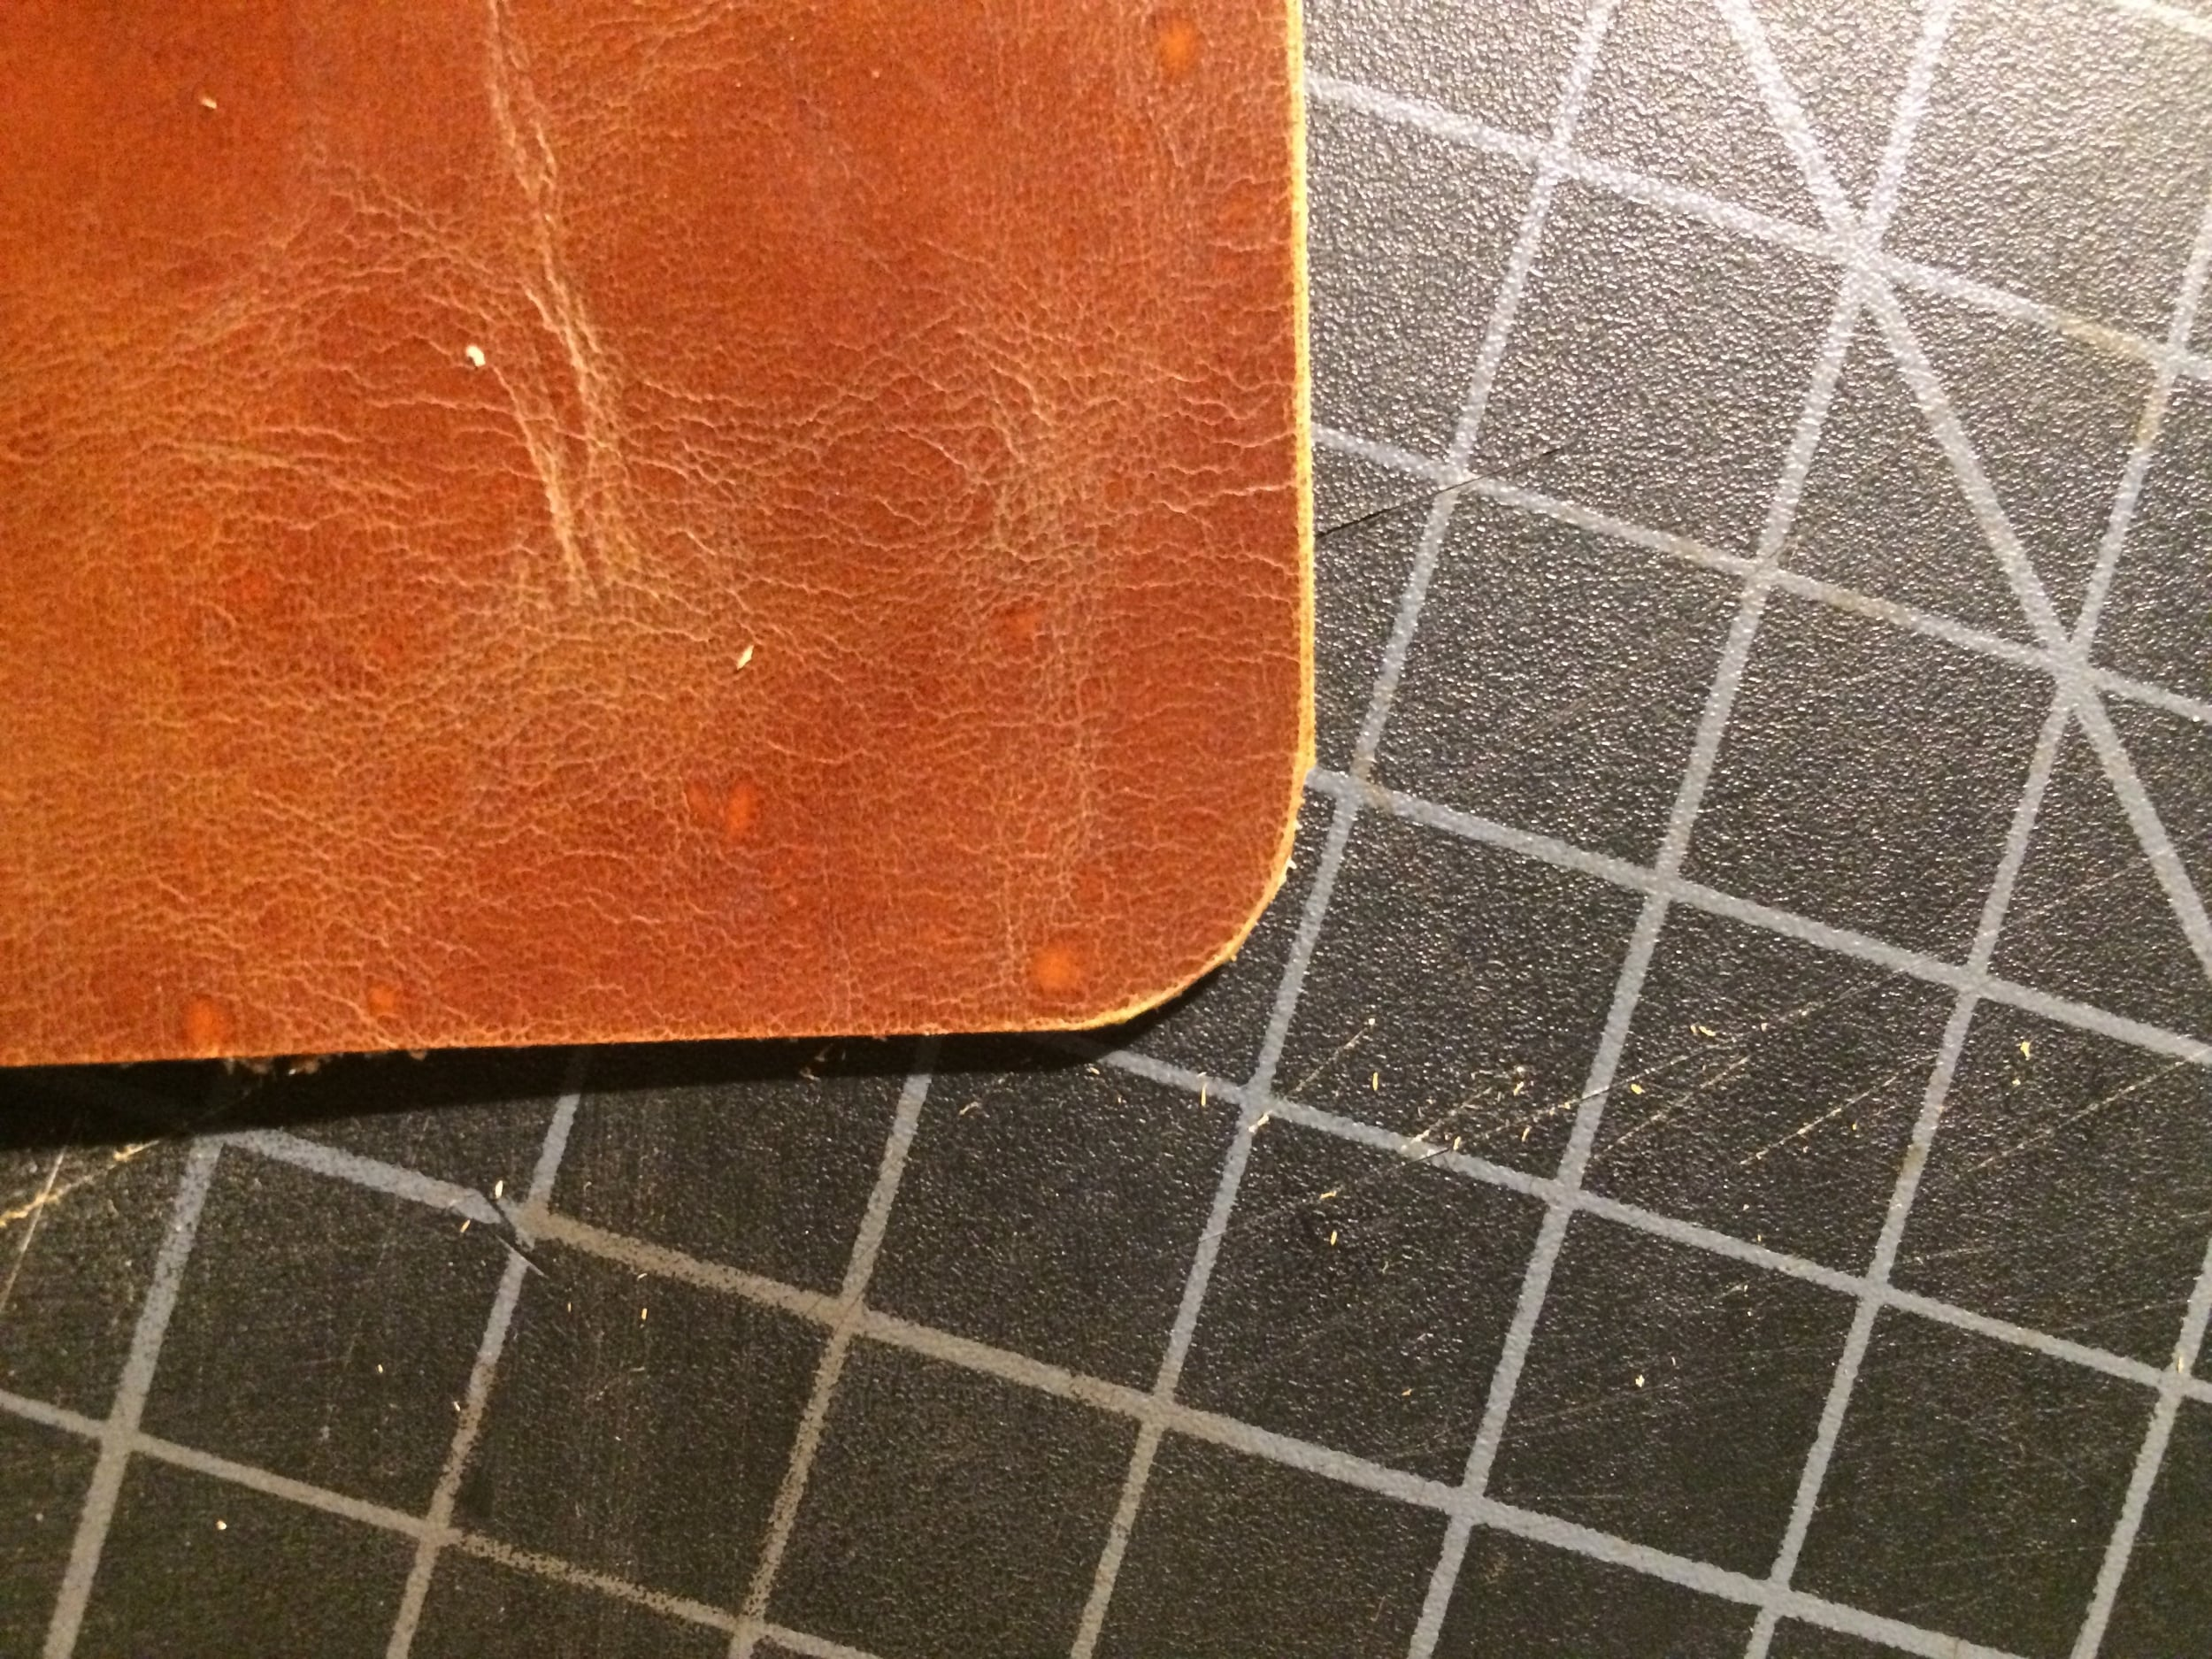 This is how the edges turned out. A little jagged, but round. Sanding will smooth this out (click to enlarge)